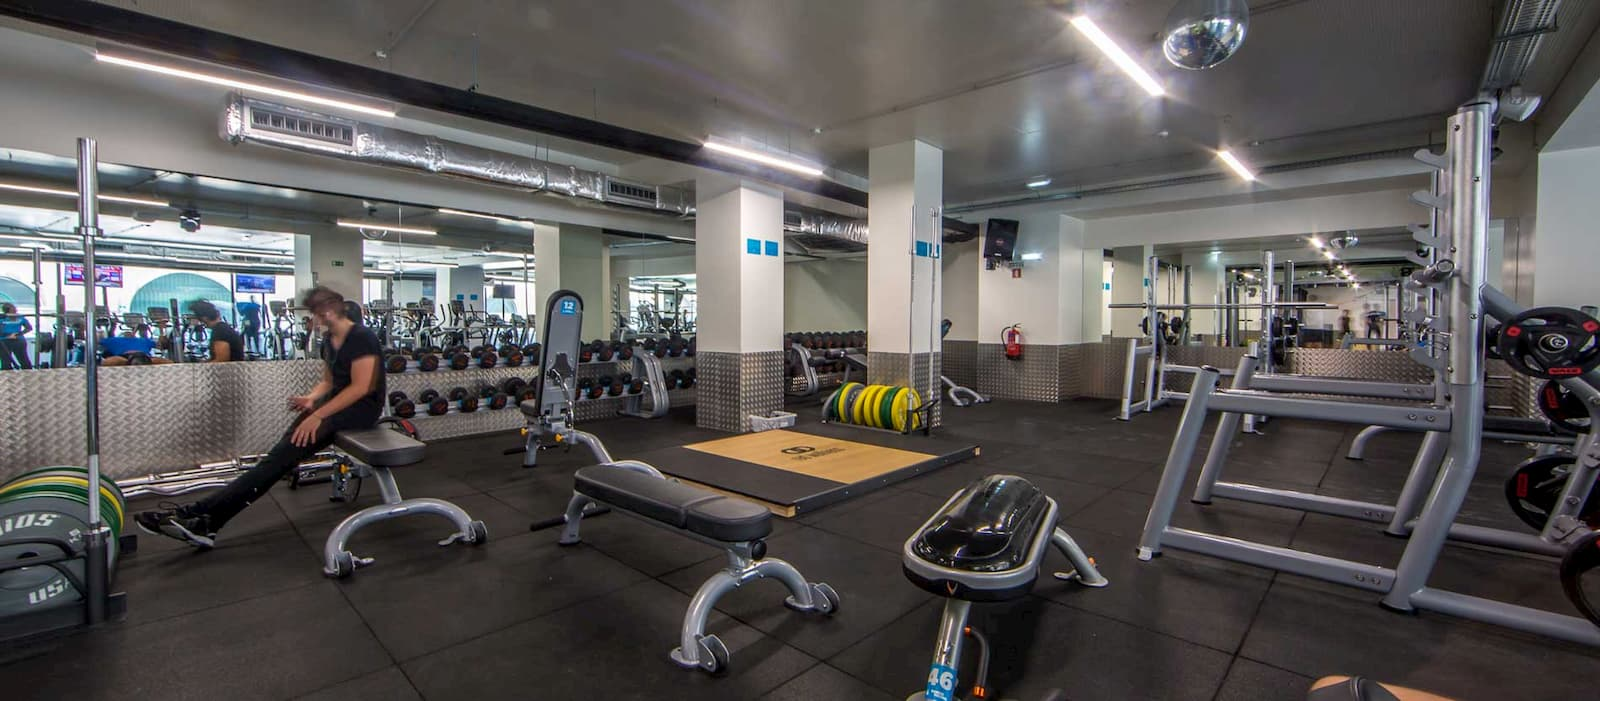 Featured gym: Fitness Hut - Santos facilties